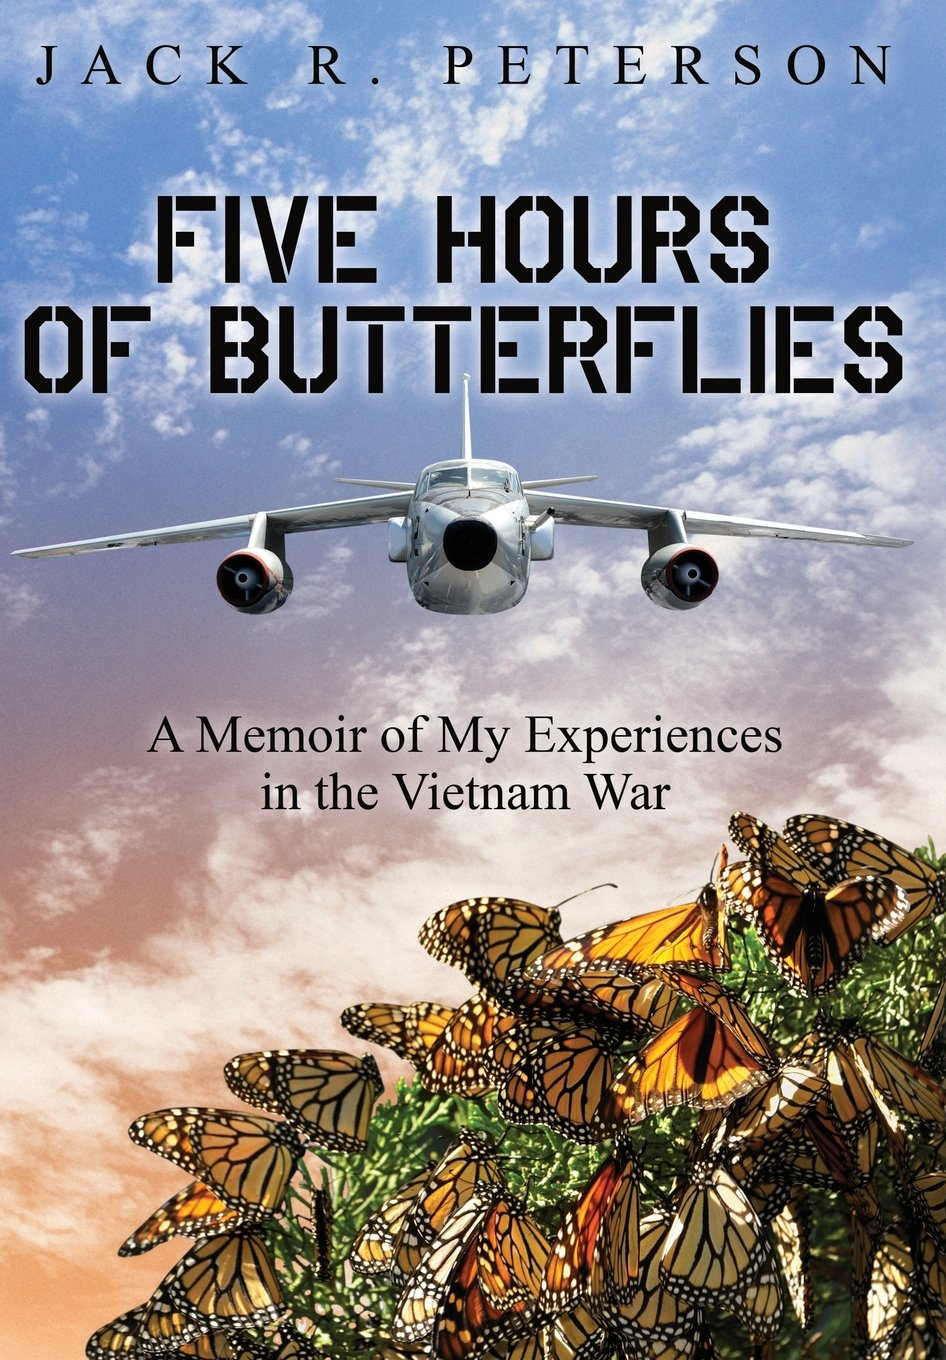 Five Hours of Butterflies-an Evening with Jack R. Peterson